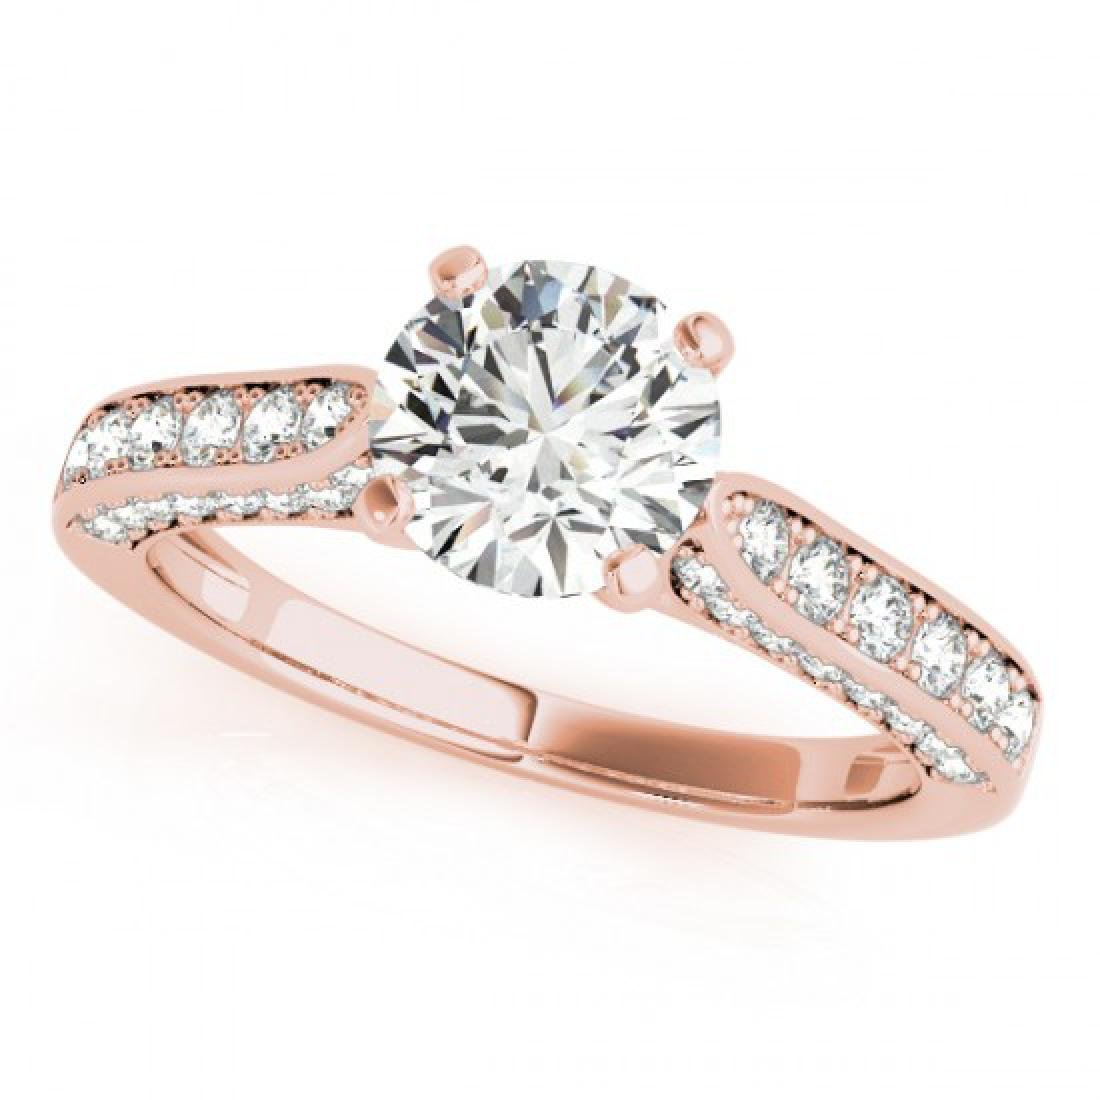 1.1 CTW Certified VS/SI Diamond Solitaire Ring 14K Rose